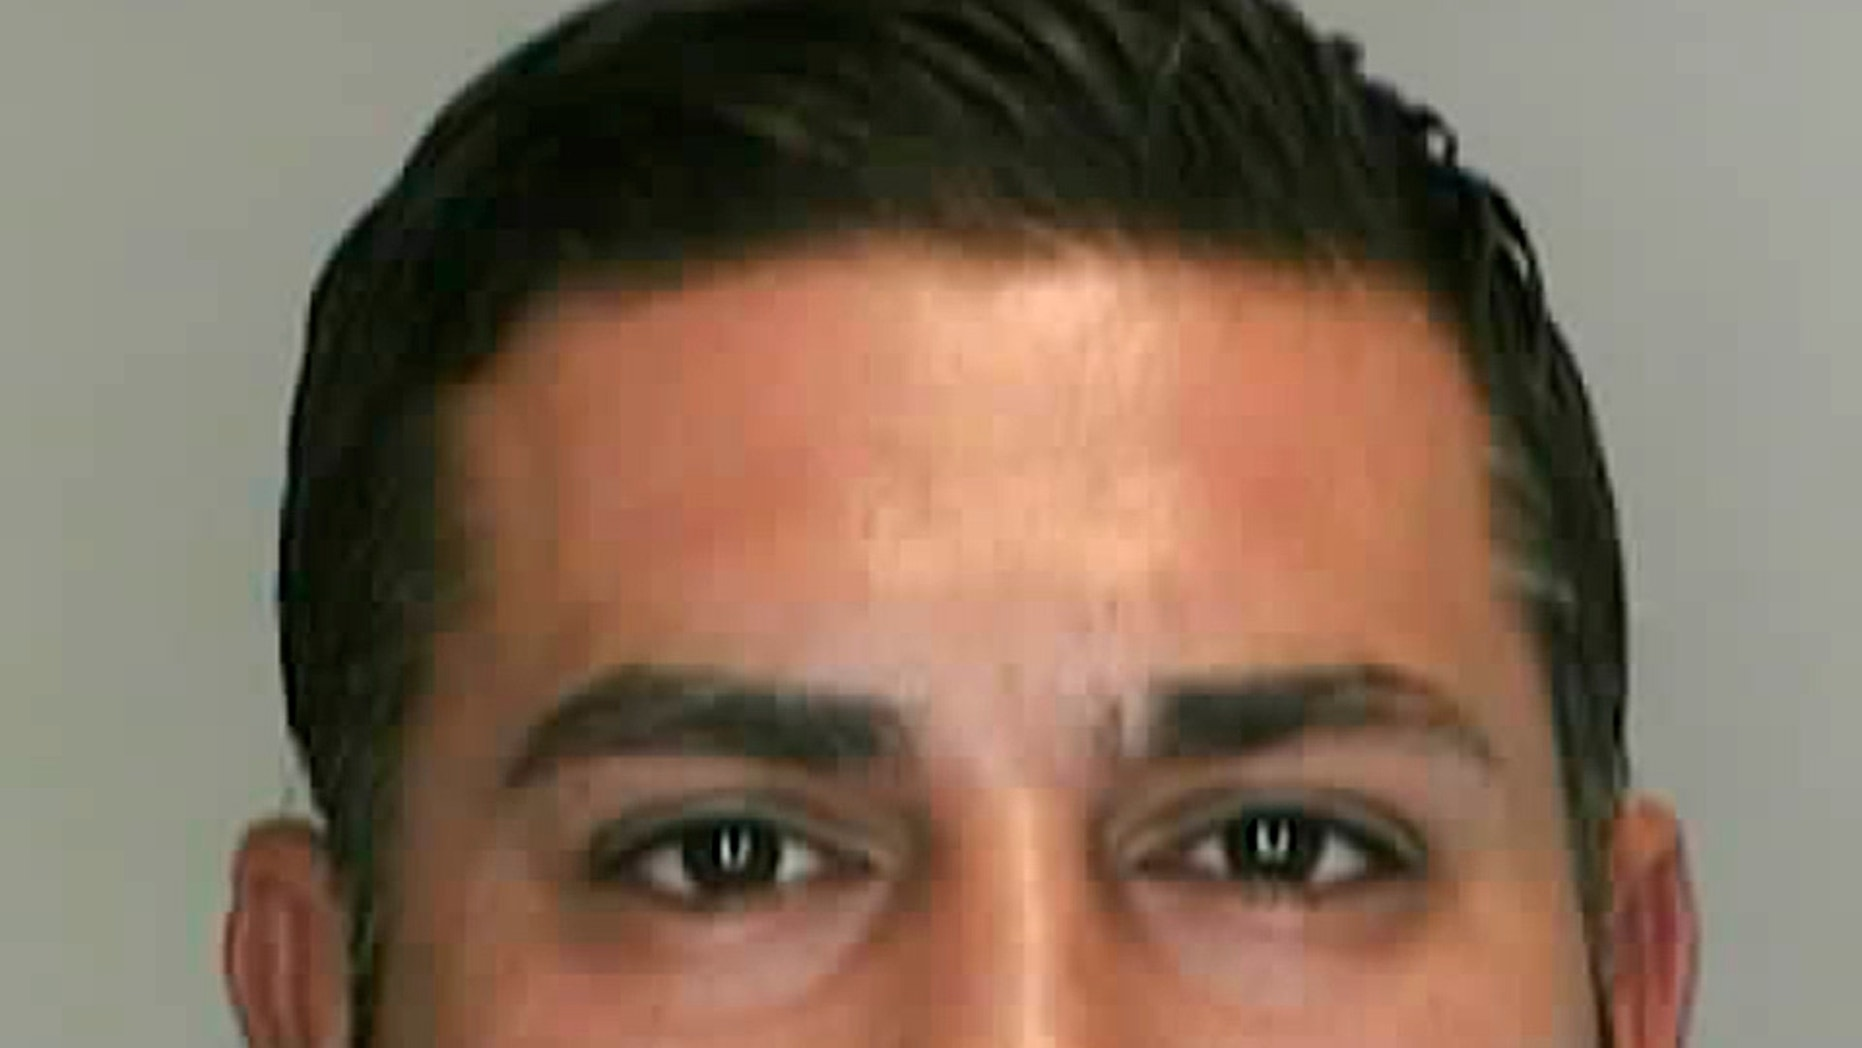 FILE- In this file photo provided by the Livonia, Mich., Police Department is Baseel Abdul-Amir Saad, 37. Saad was sentenced to at least eight years in prison for a punch that killed soccer referee John Bieniewicz during a game last summer. Bieniewicz' wife filed a $51 million lawsuit Friday, April 3, 2014 against Saad. (AP Photo/Livonia Police Department, File)